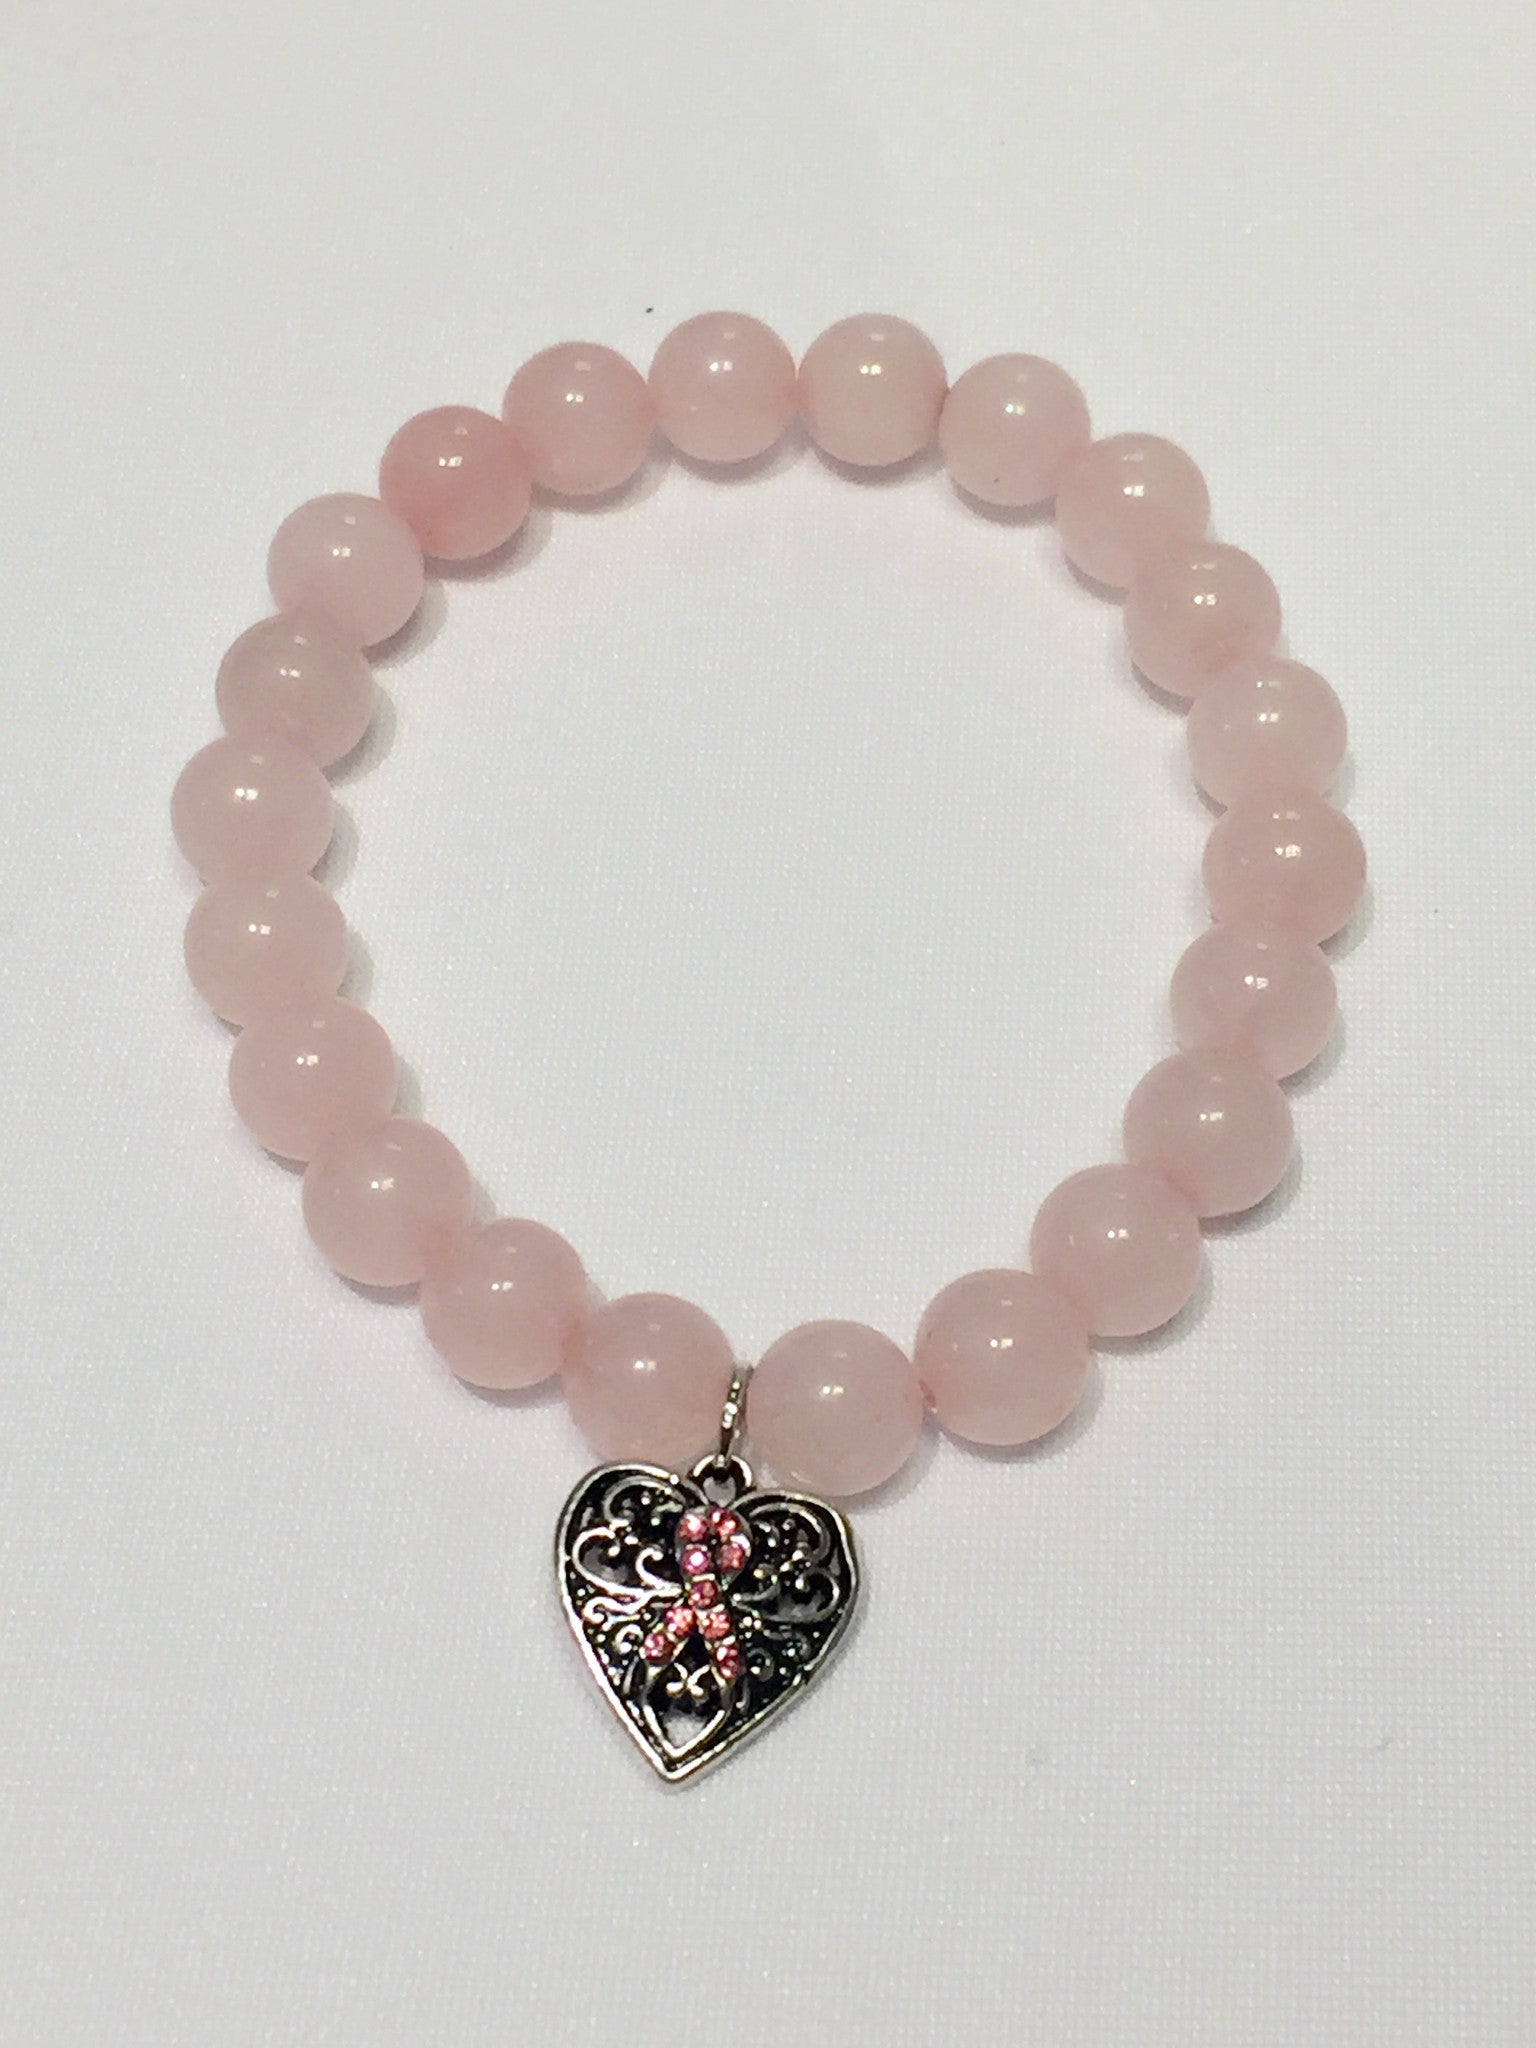 ribbon make survivor crystal baseball minimal ideas attractive is to pinterest breast knot heart life picturesque brand pink paracords cancer awesome jewelry bracelets design beaded bracelet